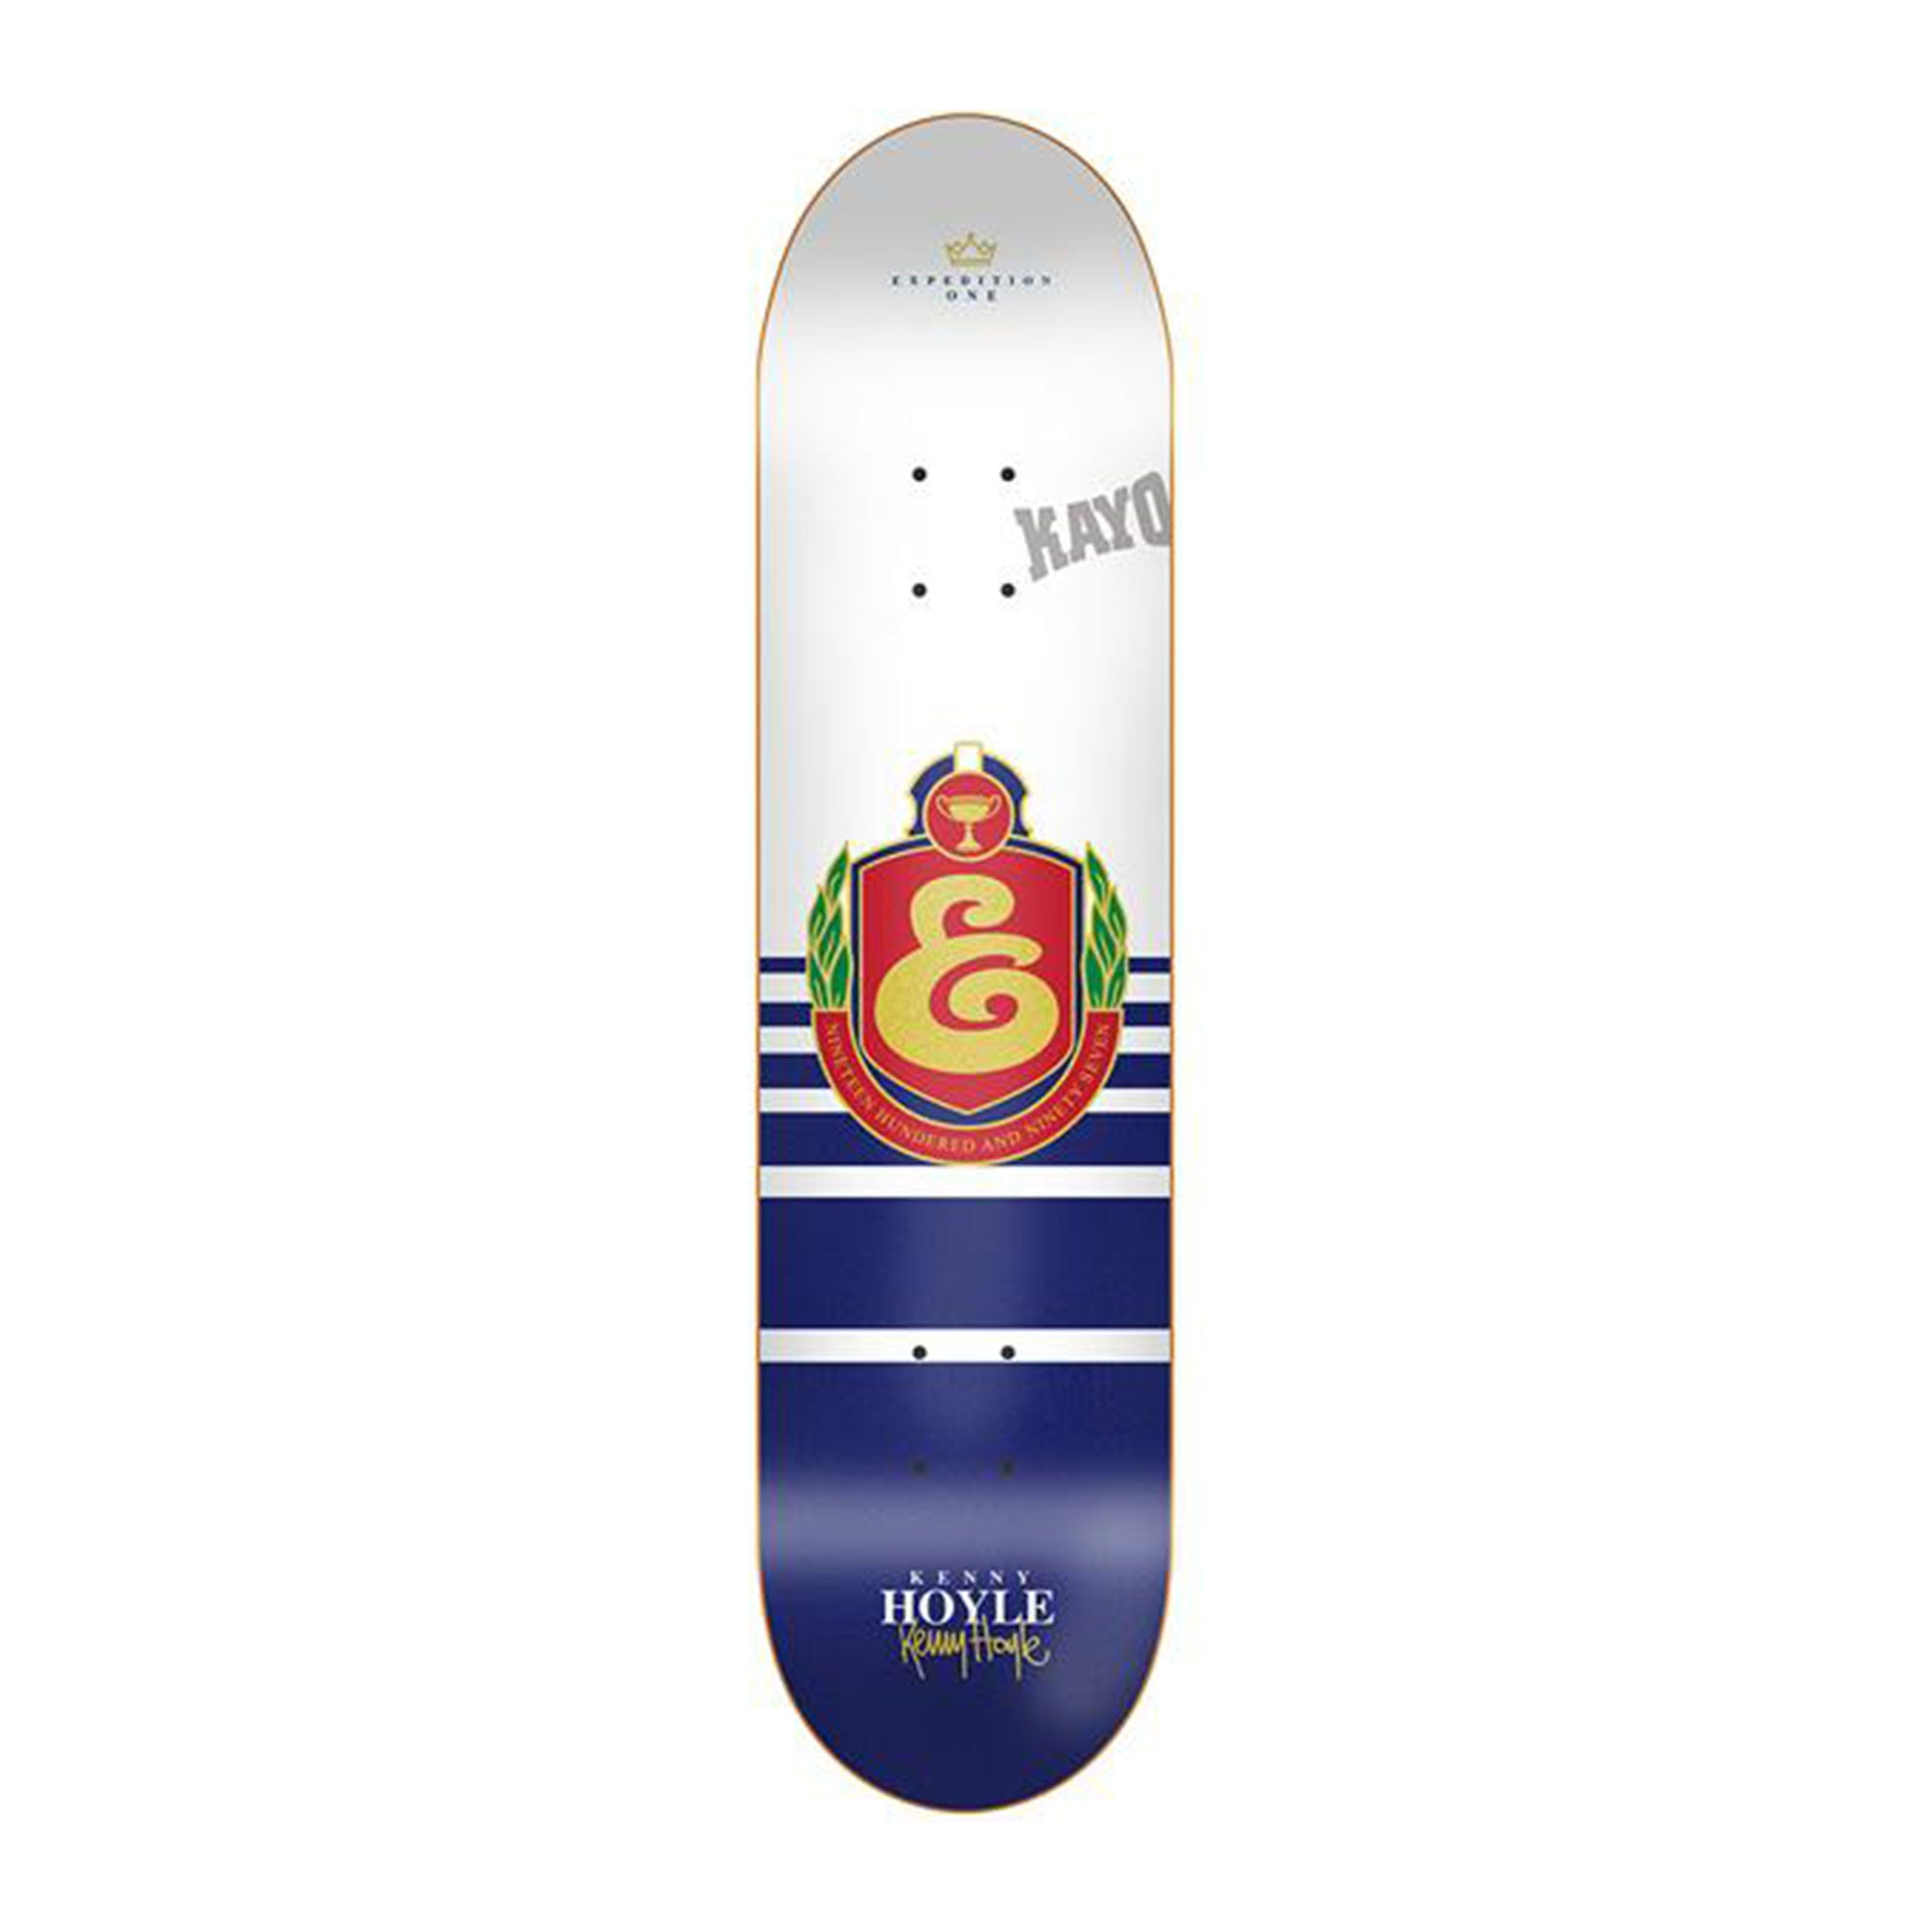 Expedition Premier League Hoyle Deck Product Photo #1